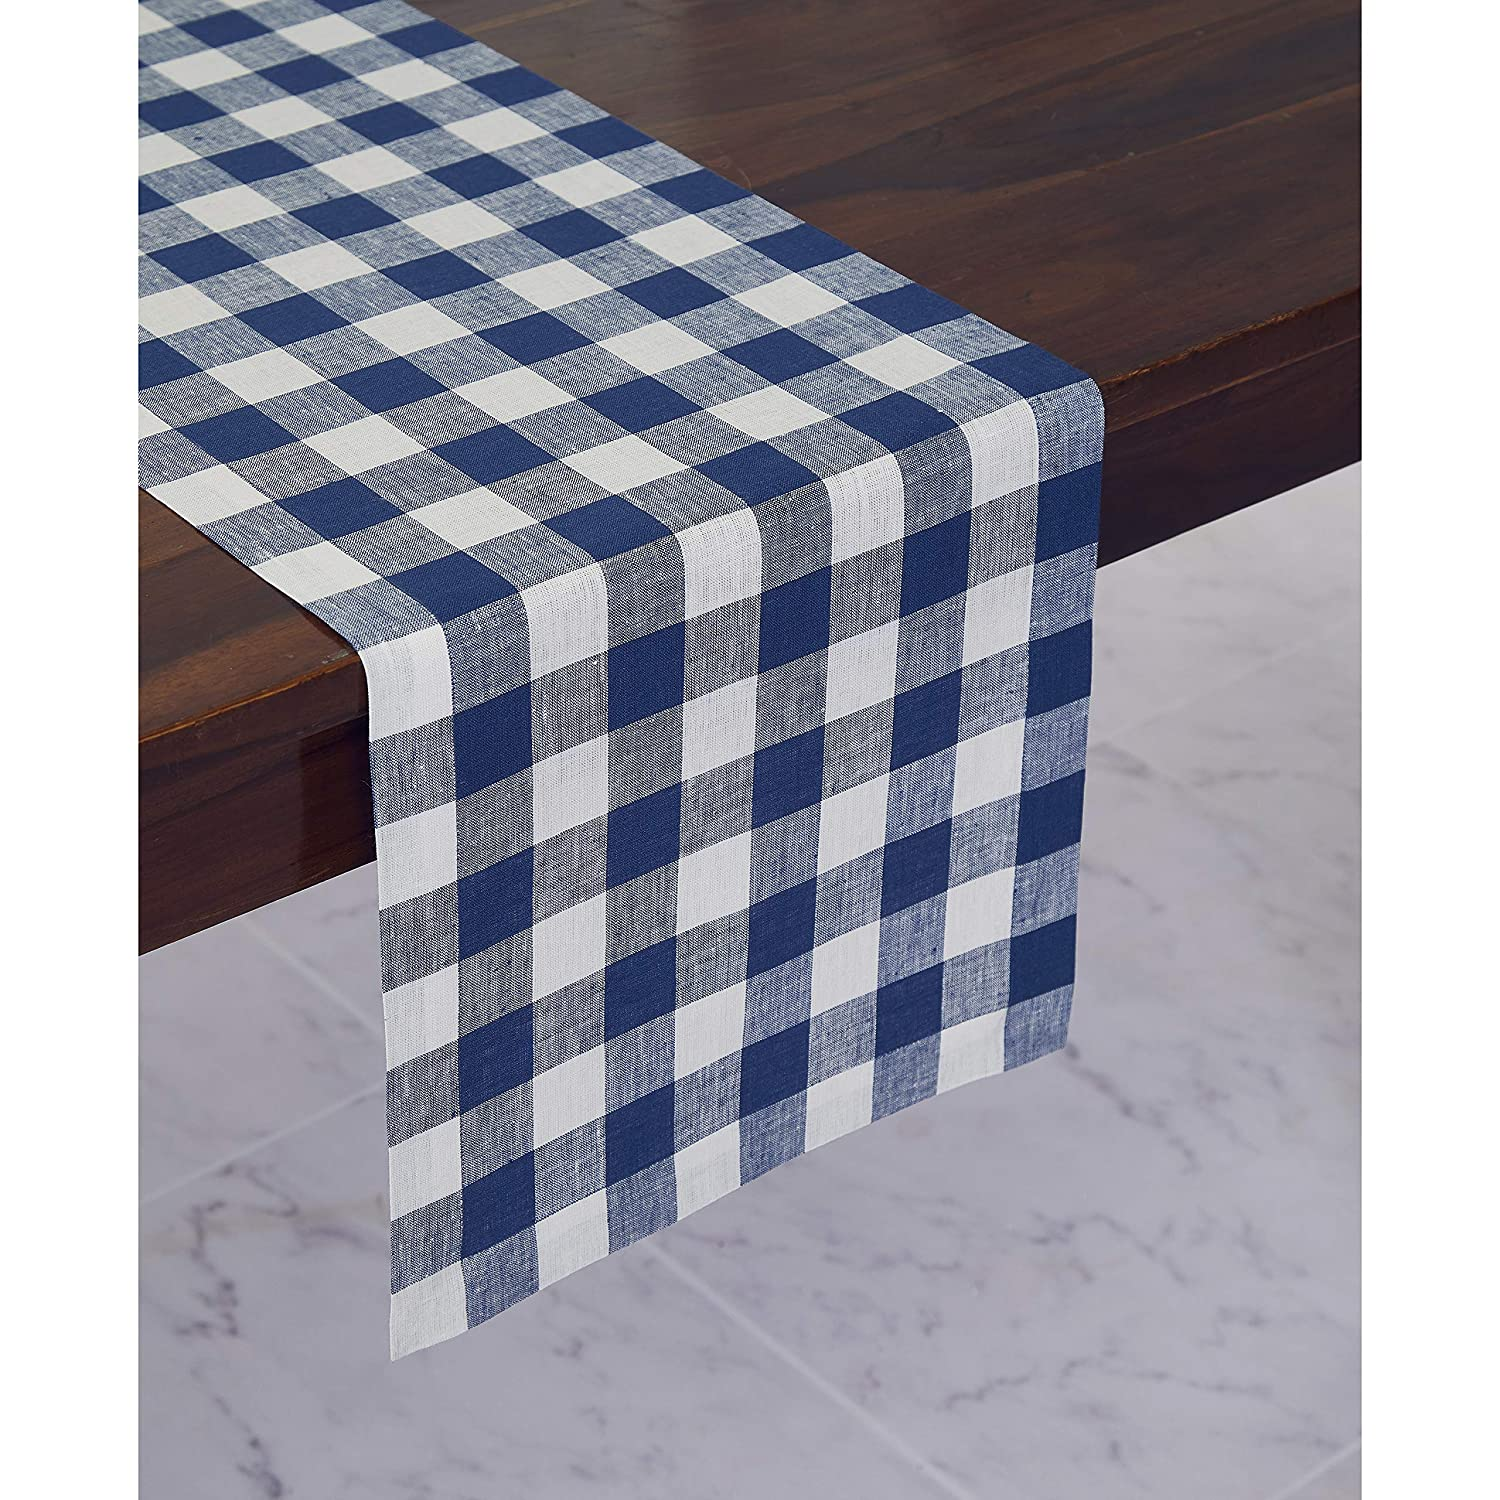 Solino Home 100 Pure Linen Checks Table Runner Blue White Check Table Runner 14 X 36 Inch Runner For Dinner Indoor And Outdoor Use